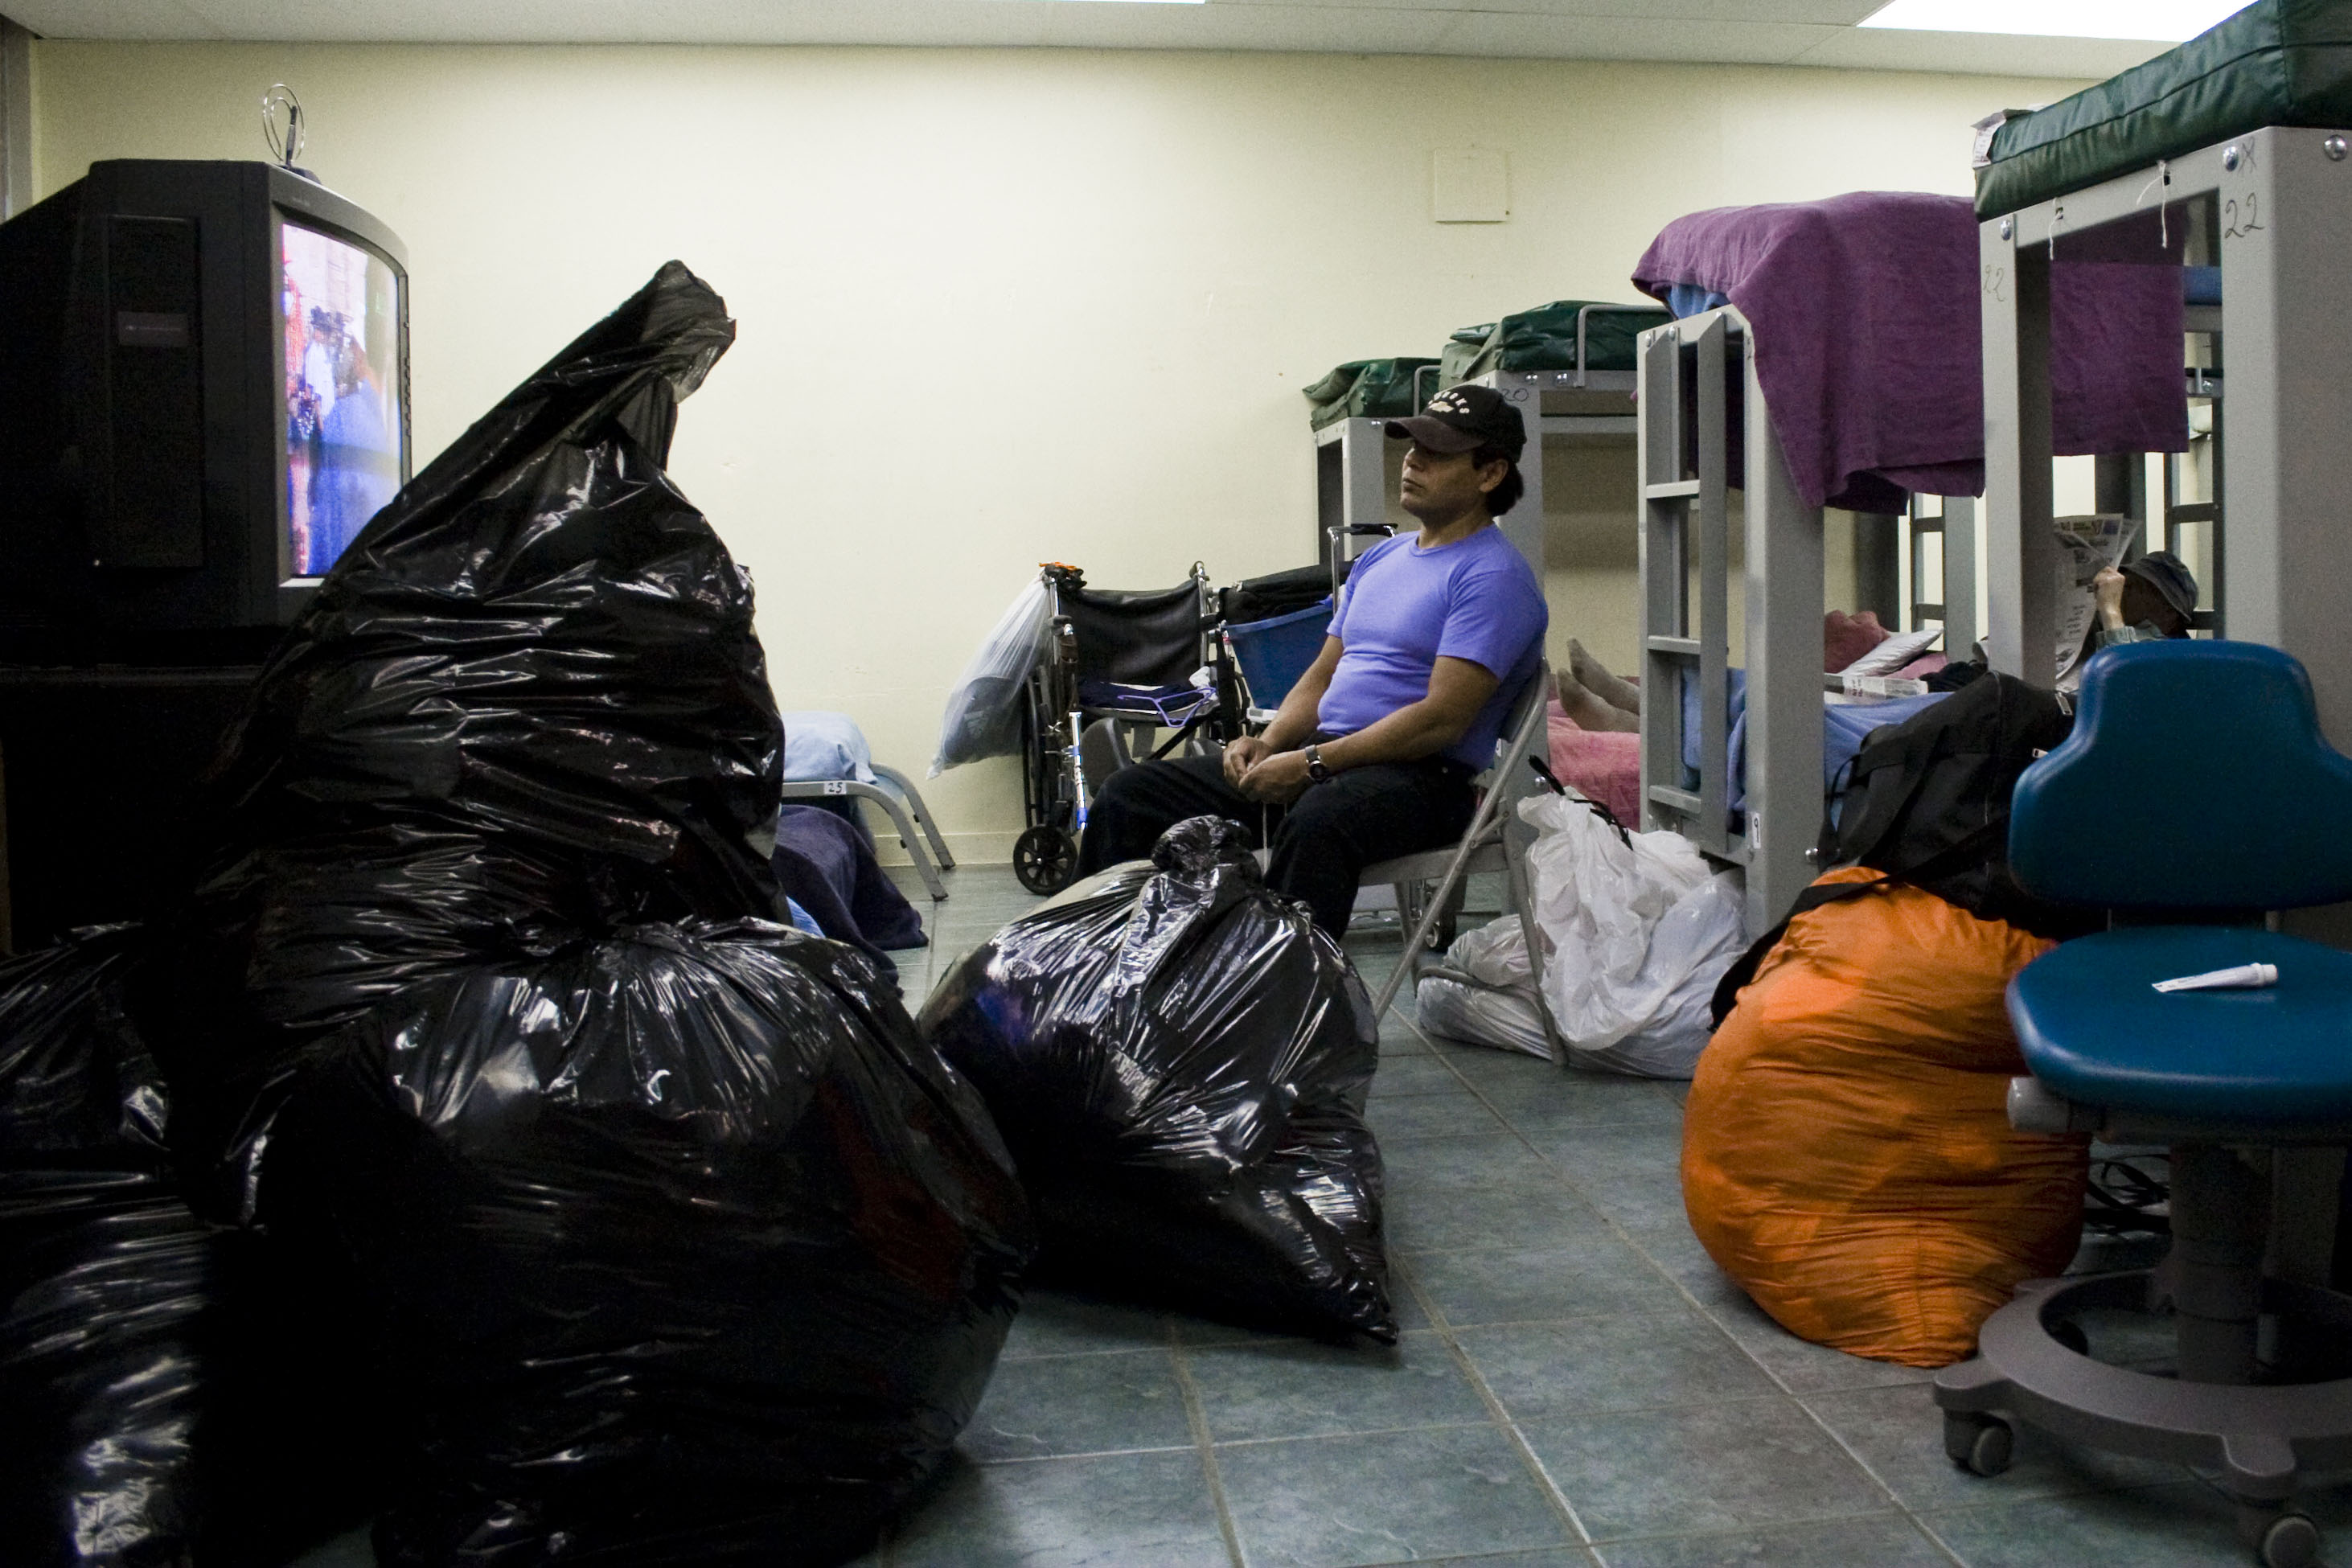 A man watches television amid trash bags of belongings in the shelter on 21st and Capp streets.